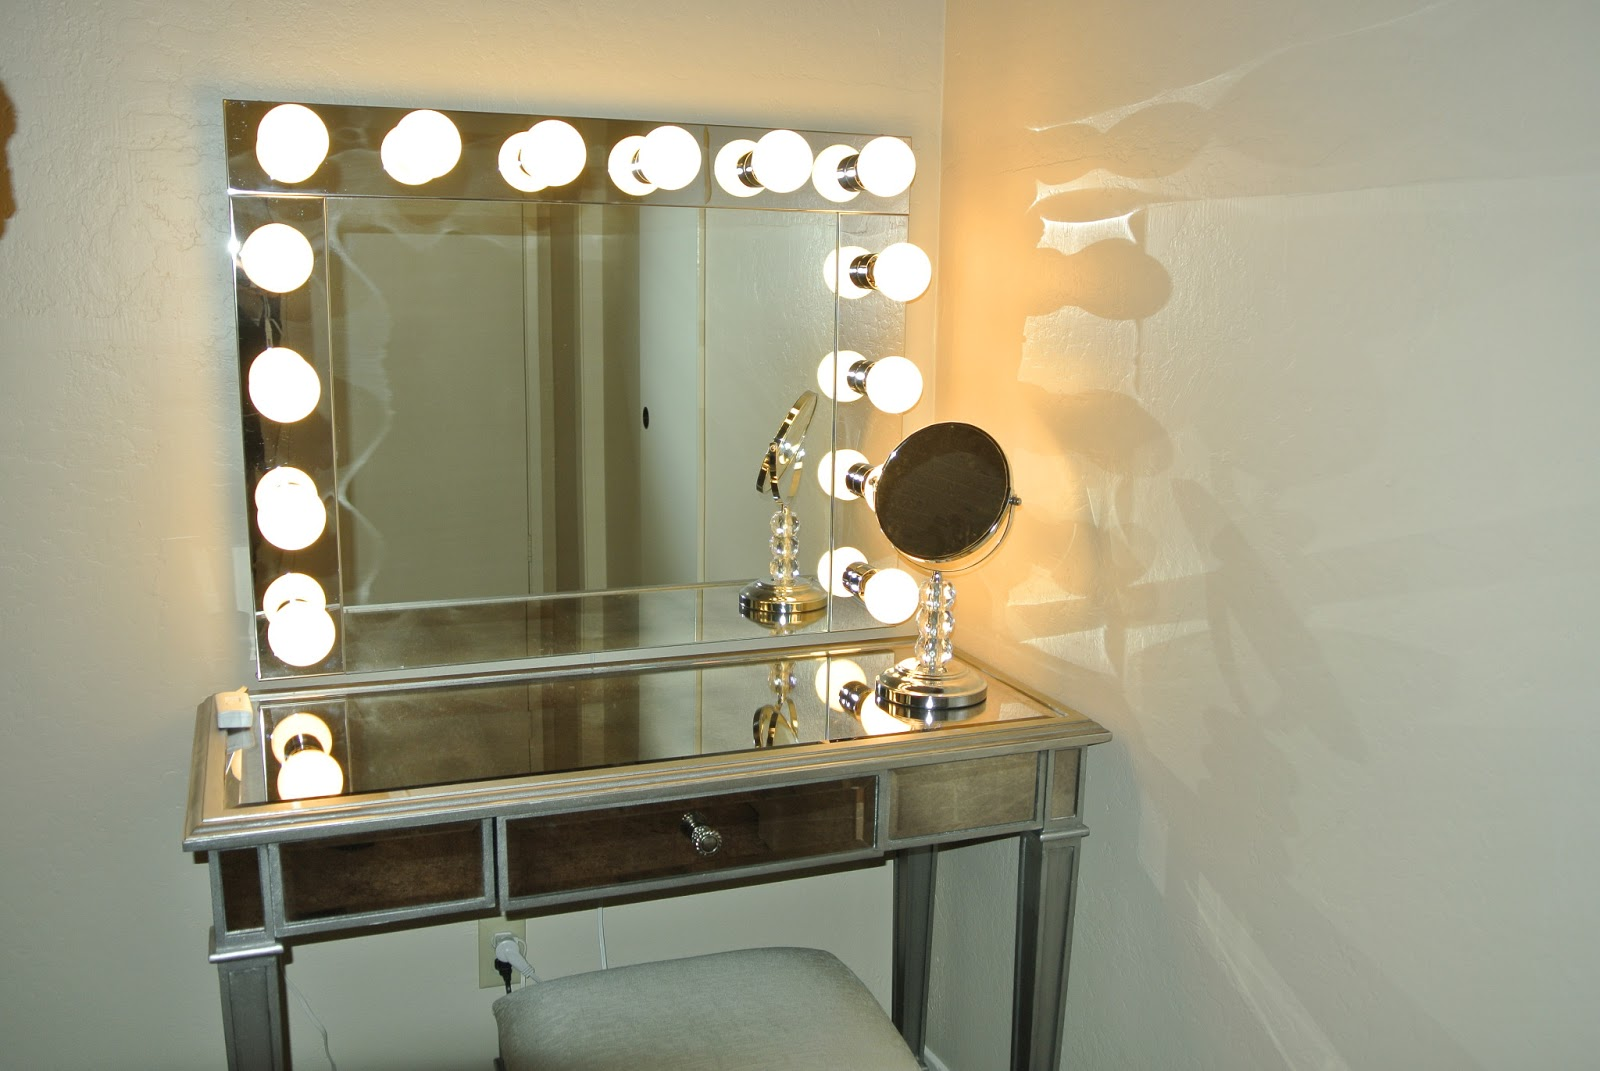 Makeup Light Up Mirror | Hollywood Vanity Mirror with Lights | Vanity Broadway Mirror